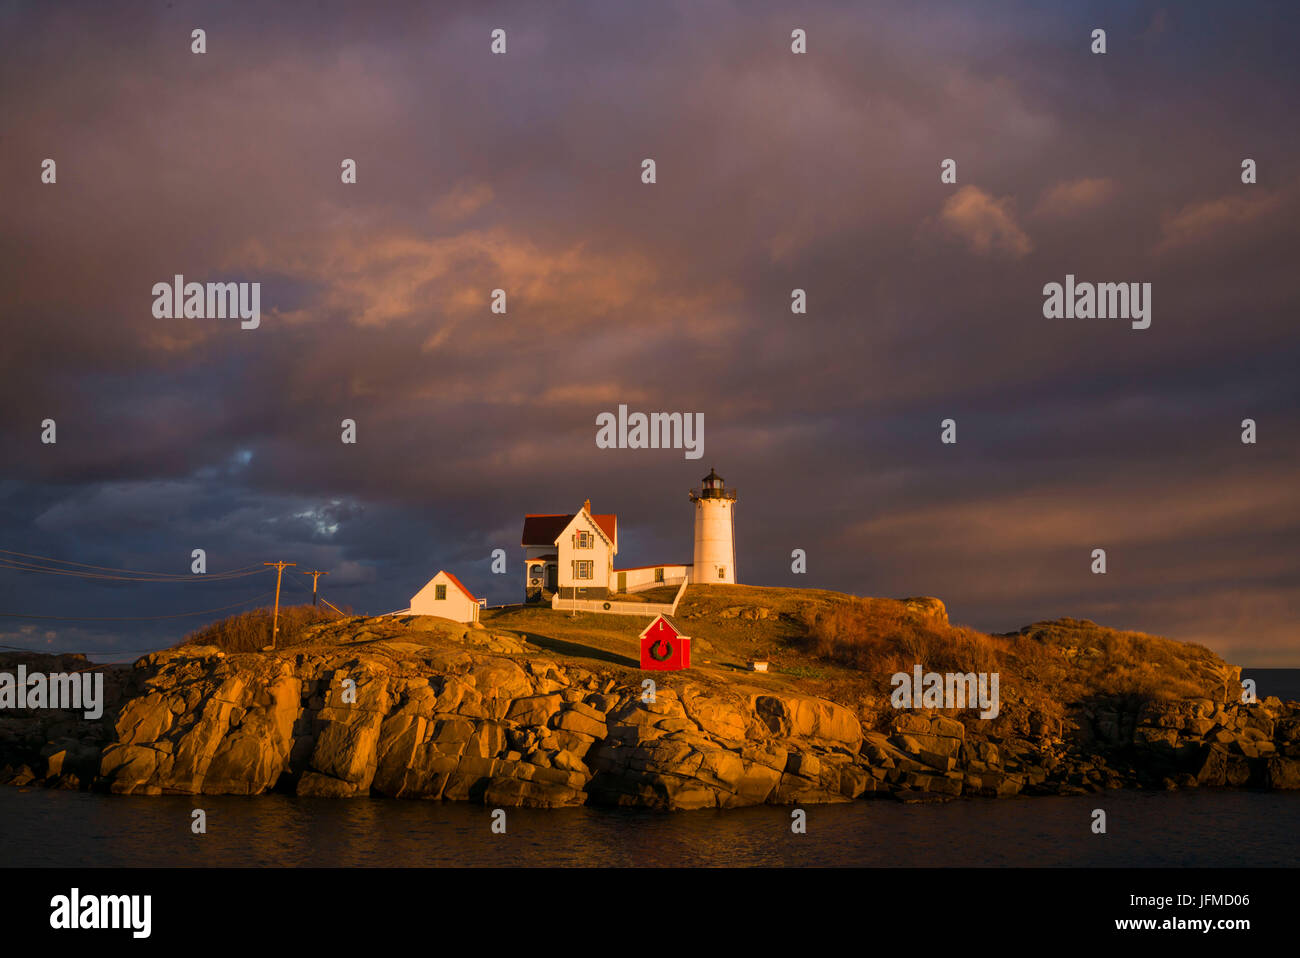 usa maine york beach nubble light lighthouse with christmas decorations sunset - Christmas Lighthouse Decorations